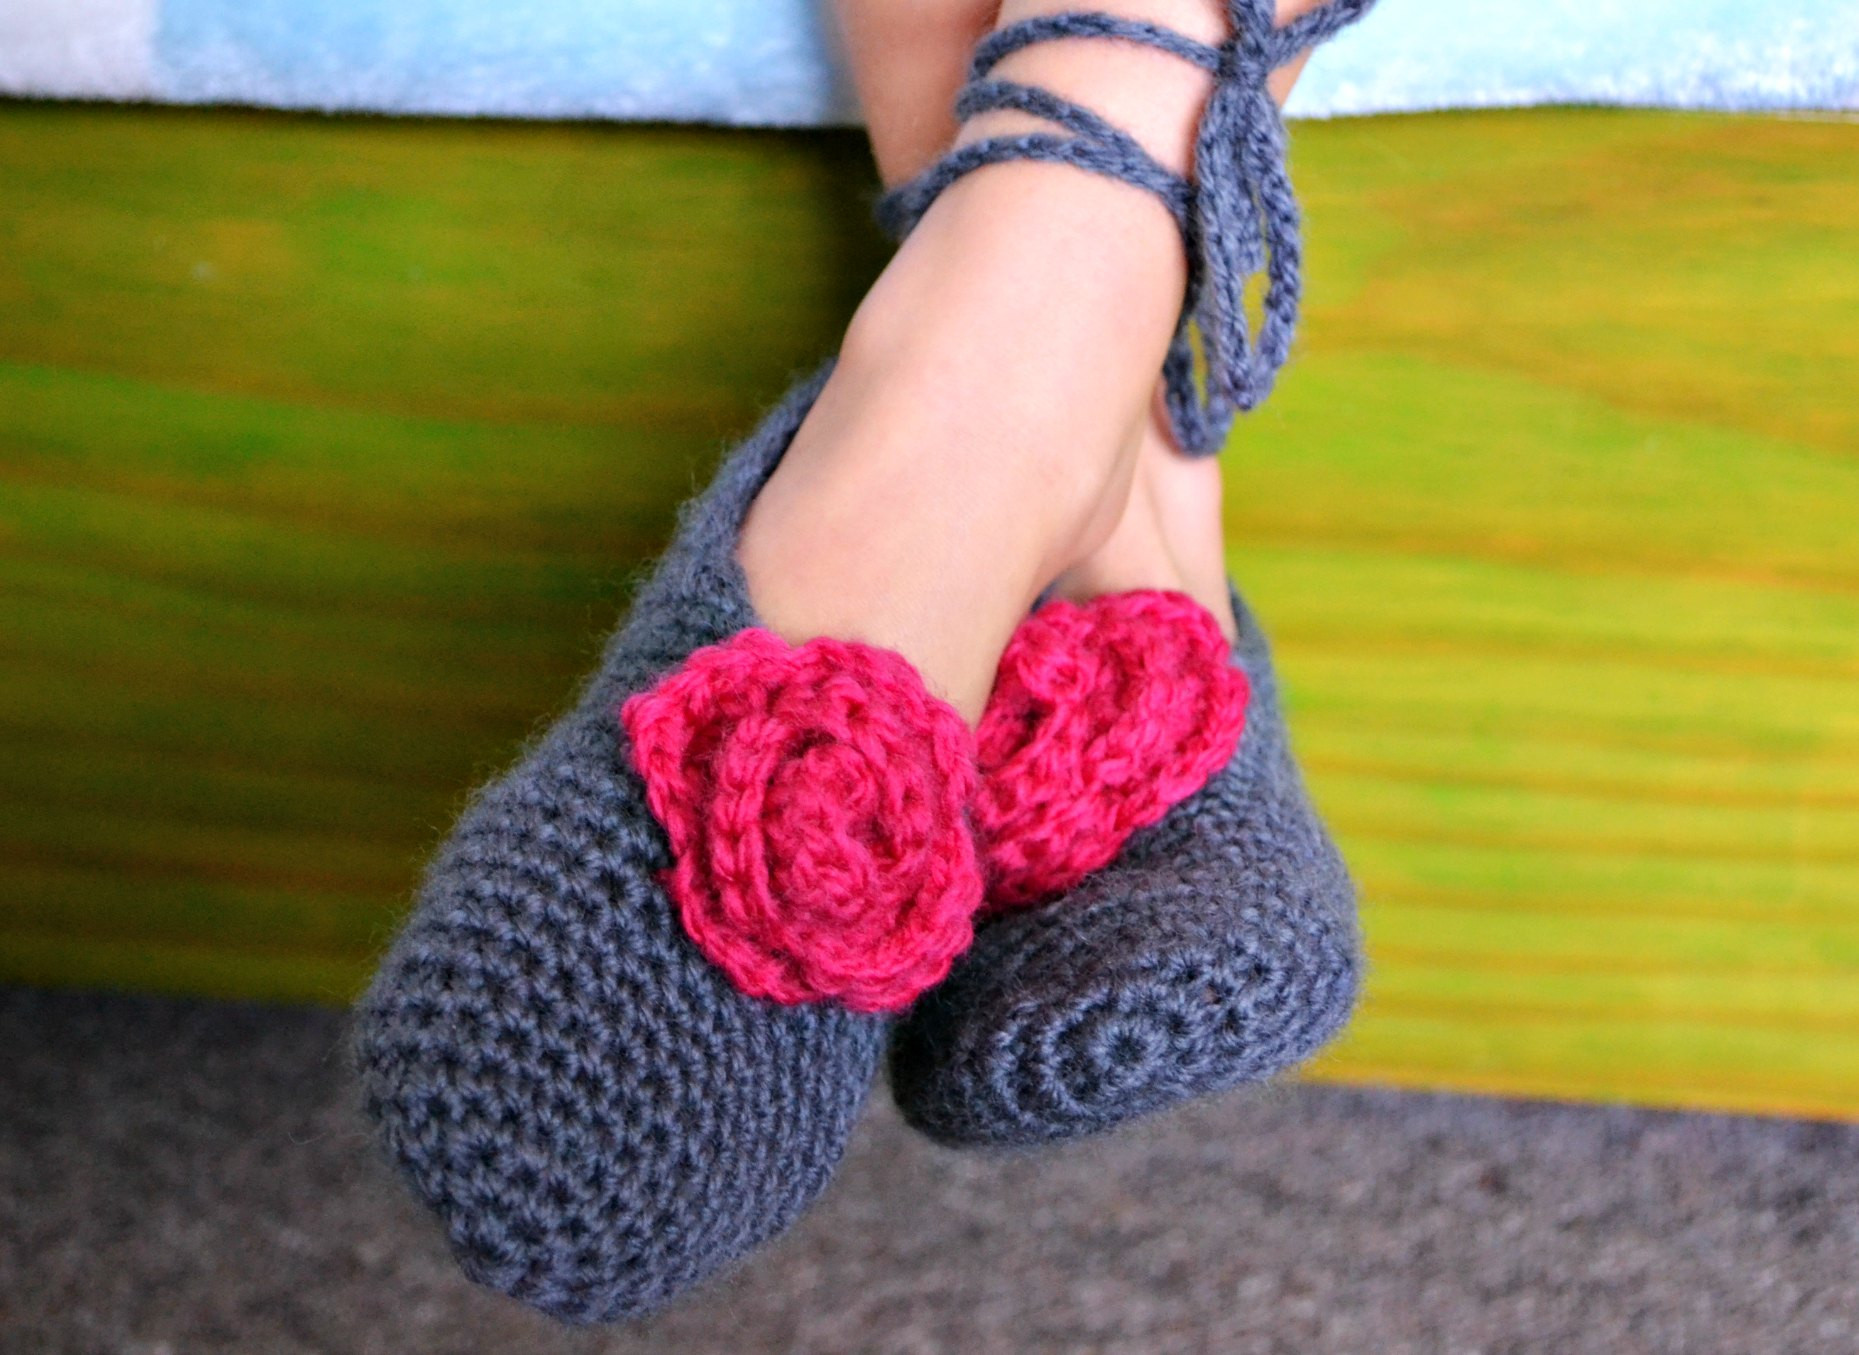 Crochet Slipper socks Beautiful Quick Crochet Slippers Crochet and Knit Of Charming 47 Photos Crochet Slipper socks